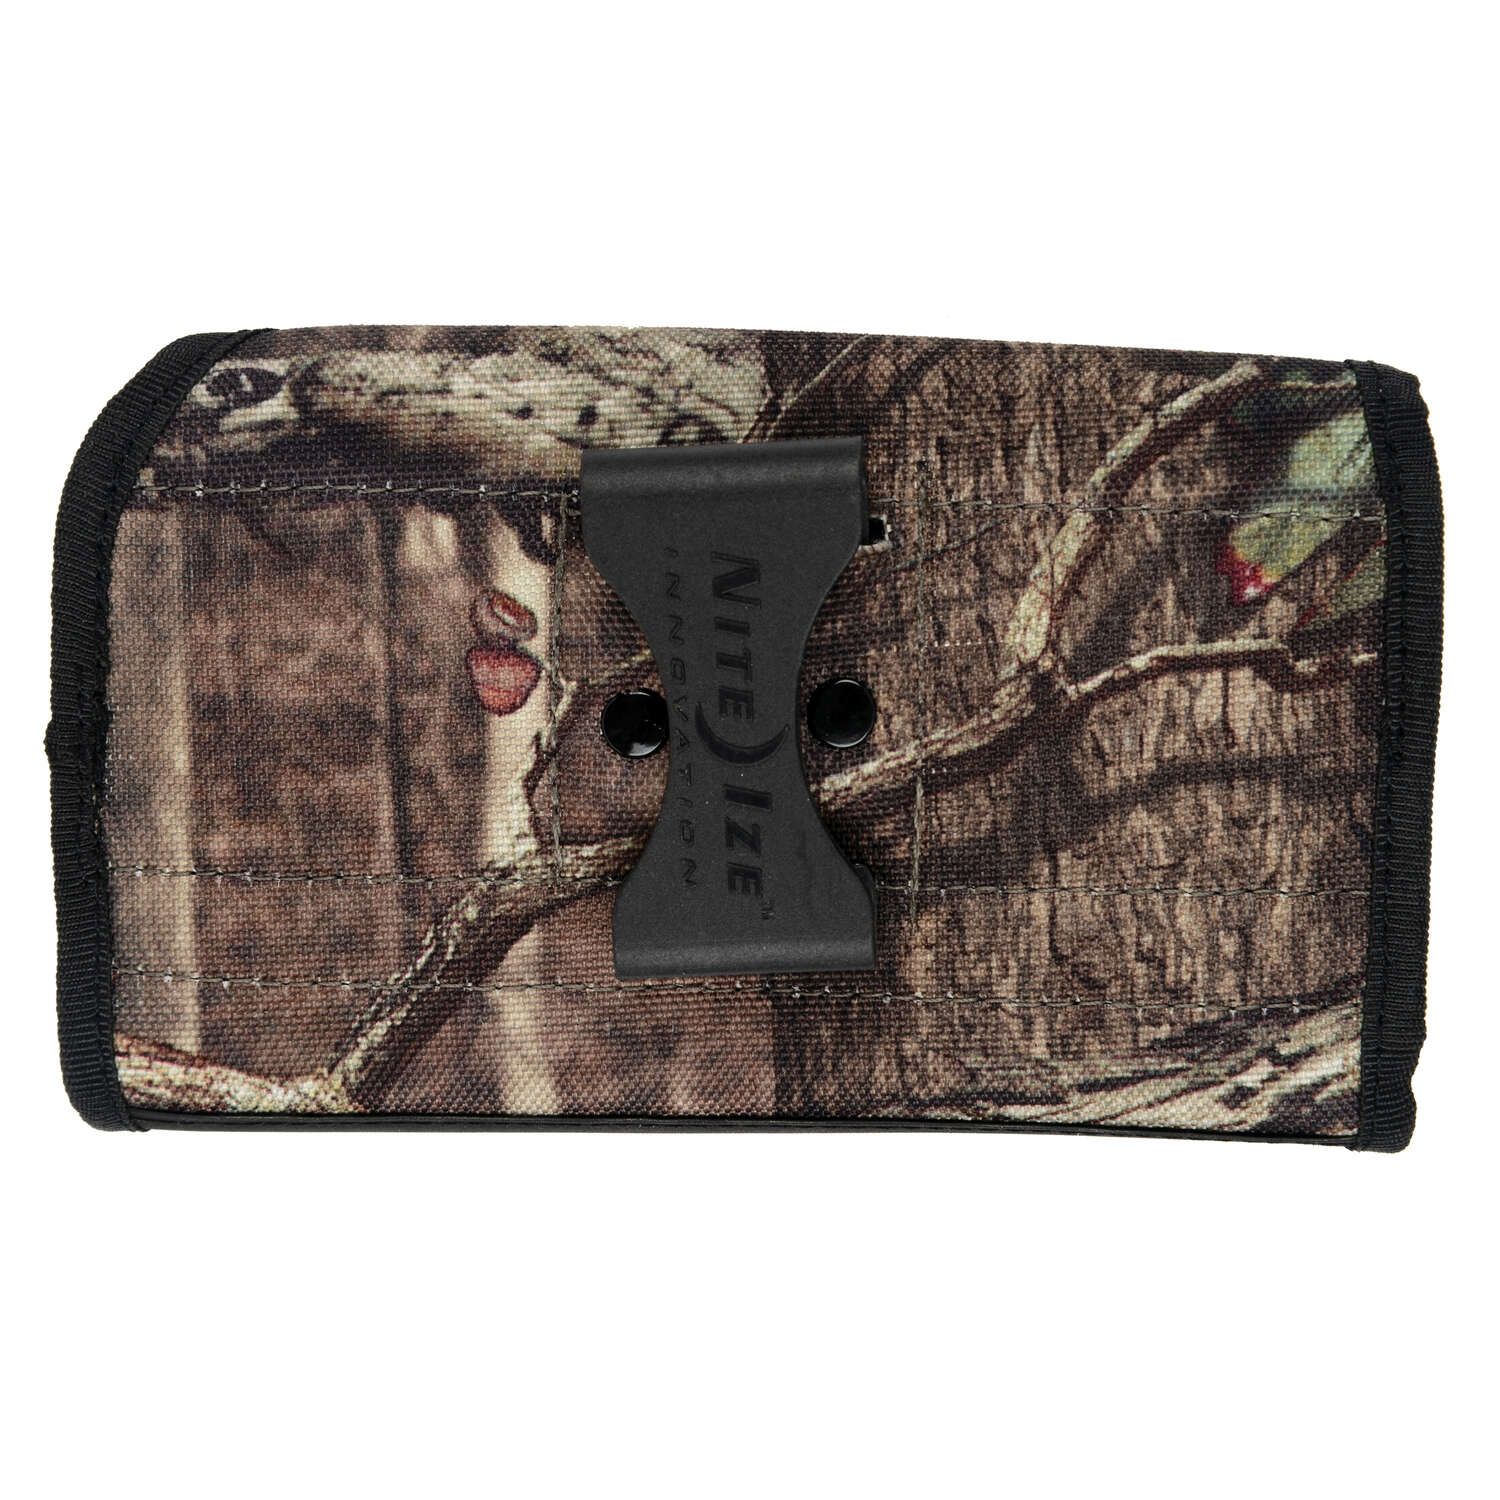 Nite Ize  Clip Case Sideways  Mossy Oak  Cell Phone Case  For Universal Universal